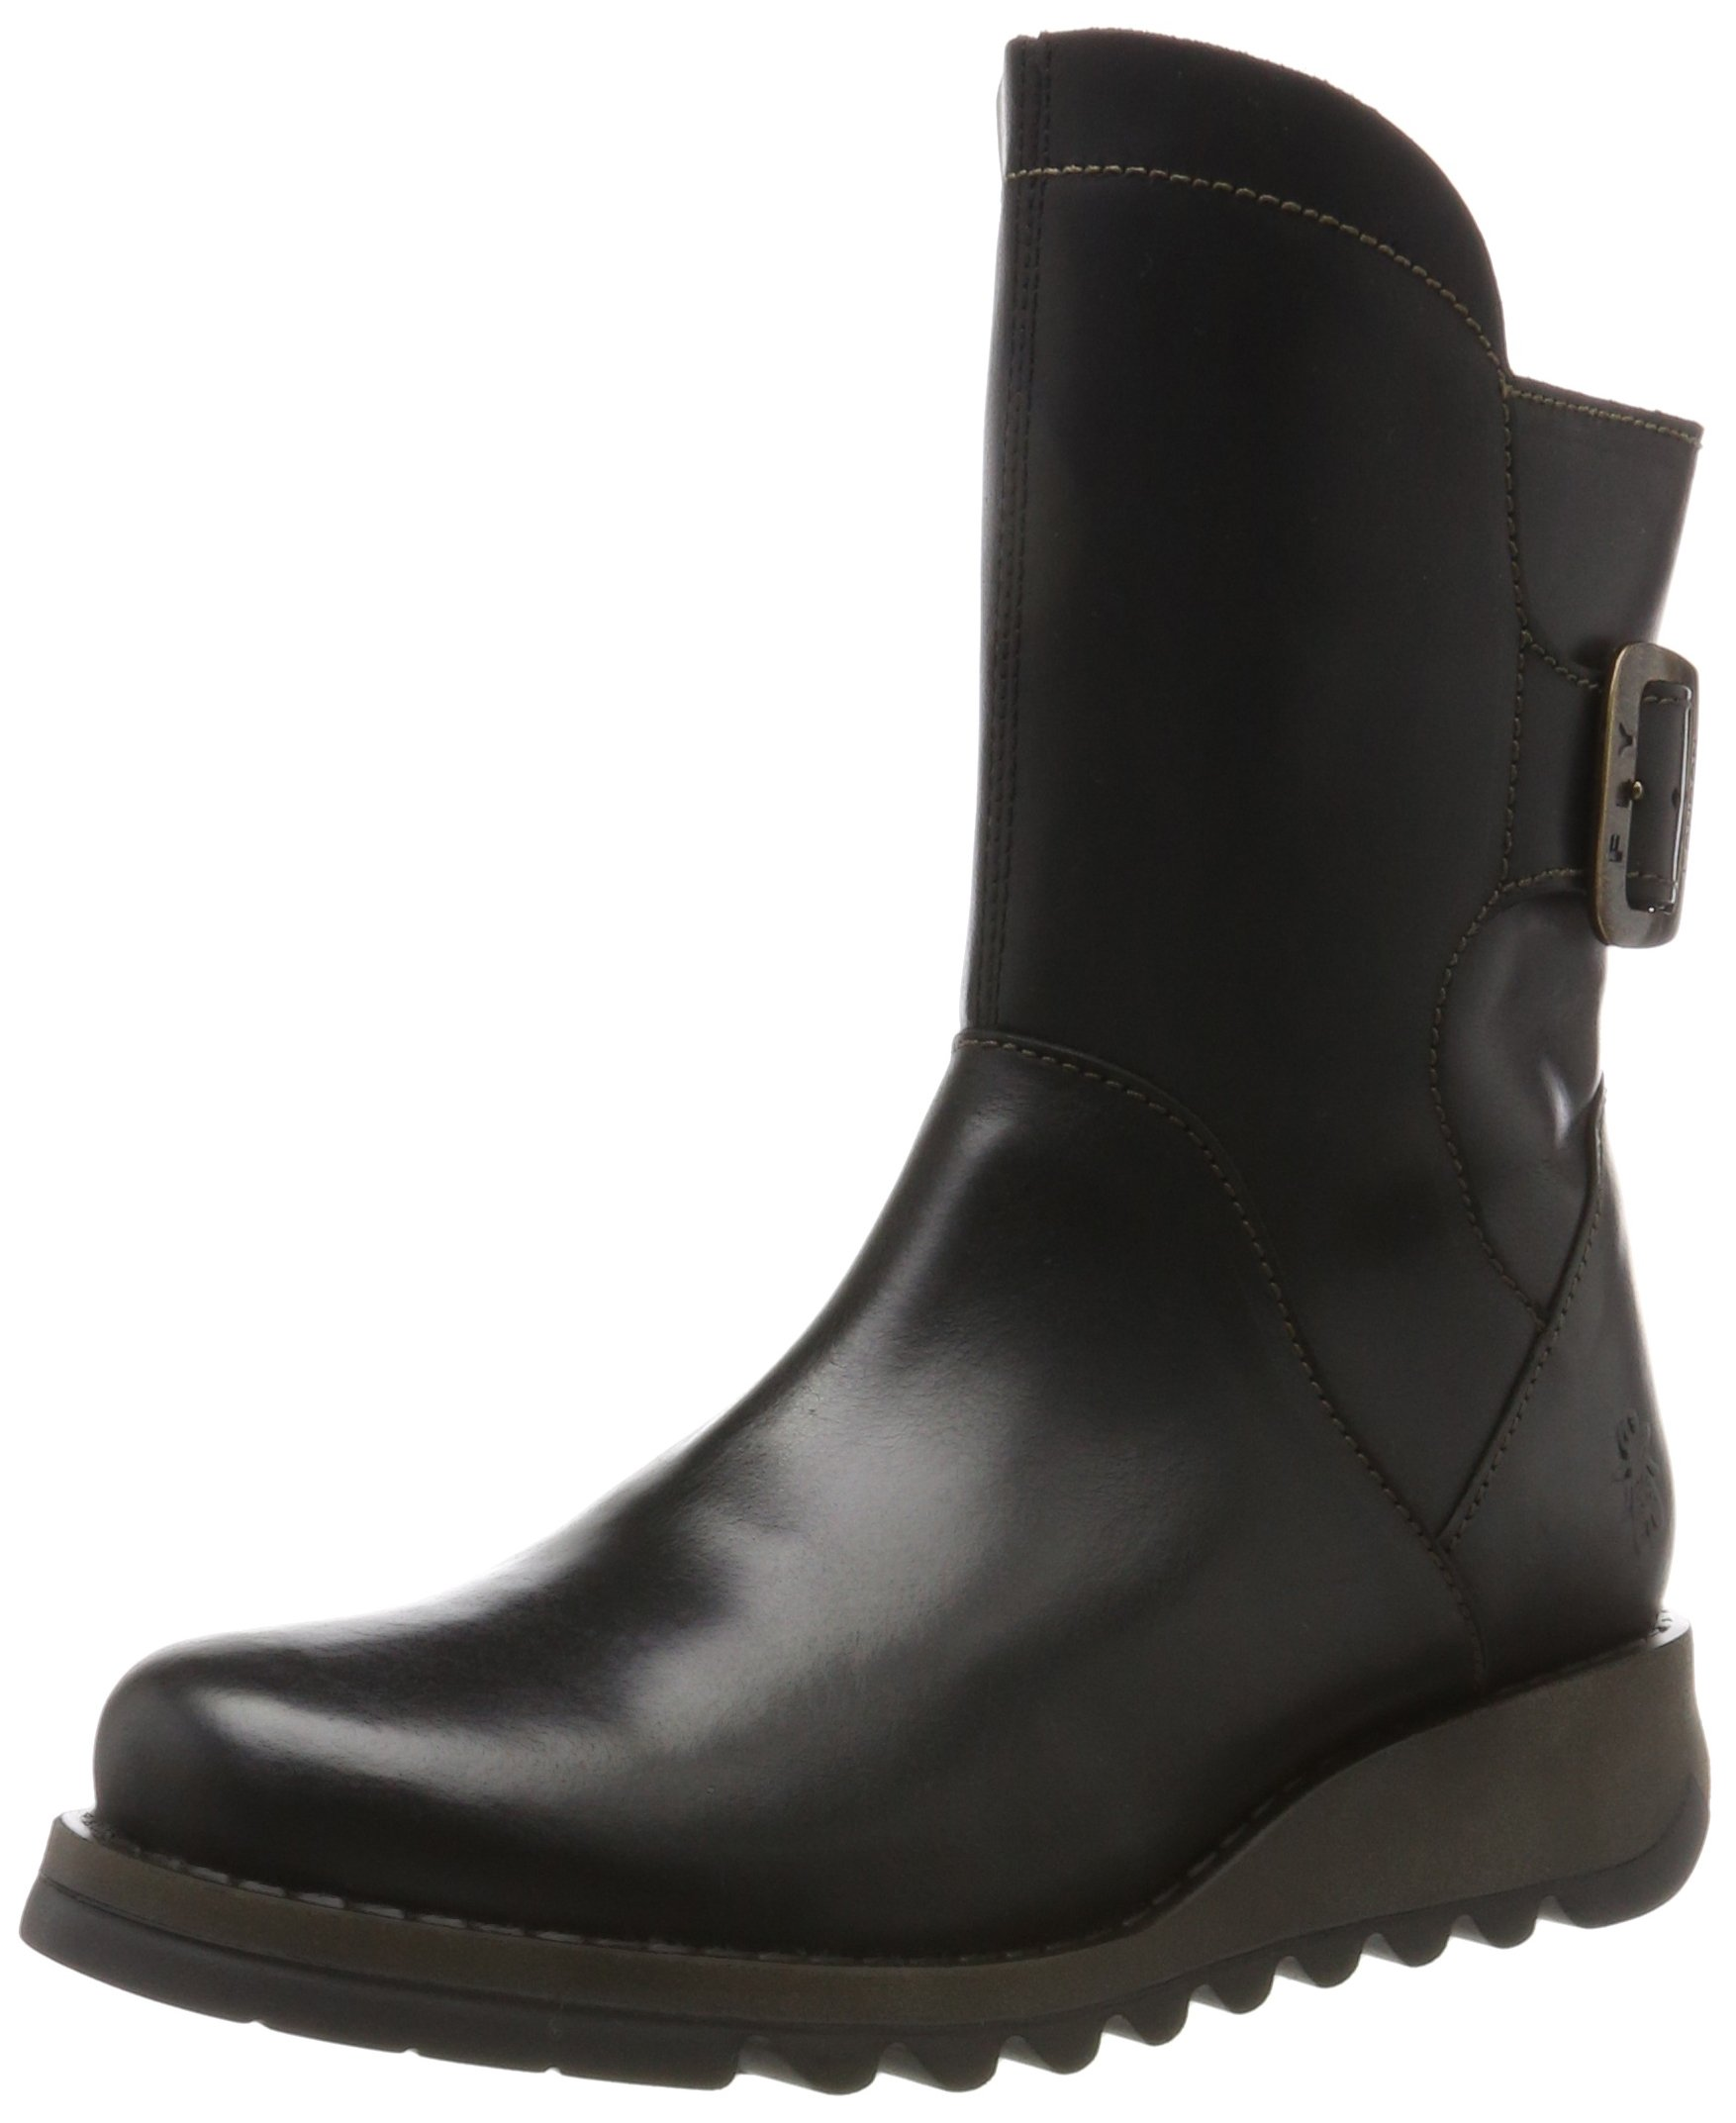 FLY London Sien Warm - Black Rug (Leather) Womens Boots 7.5/8 US